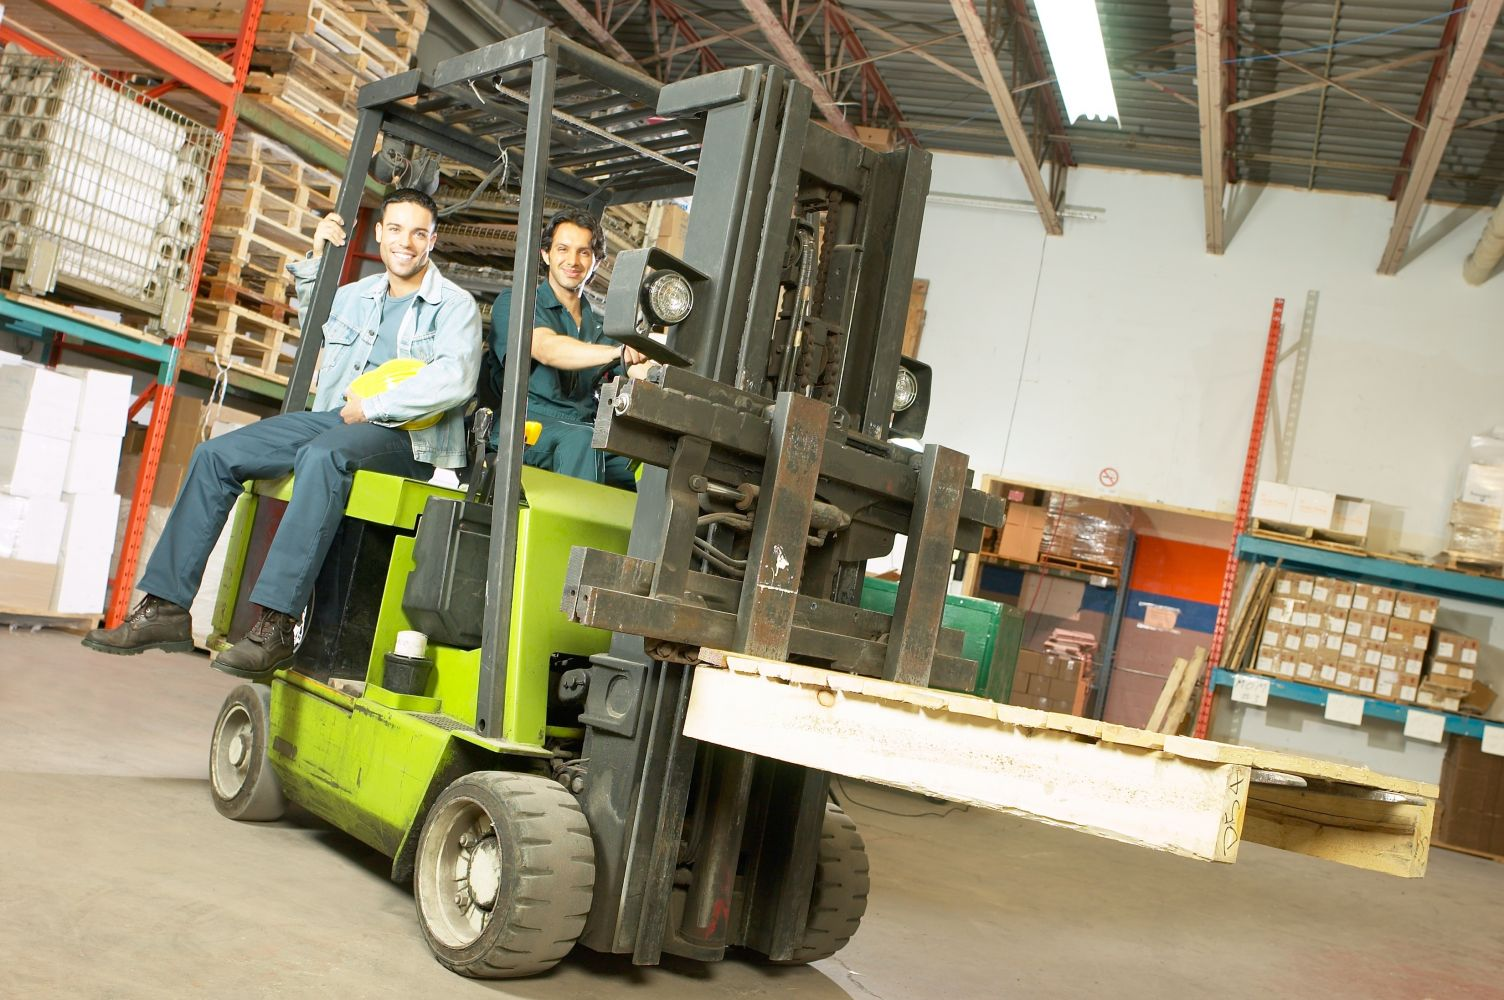 Forklift models in action in Honolulu, HI